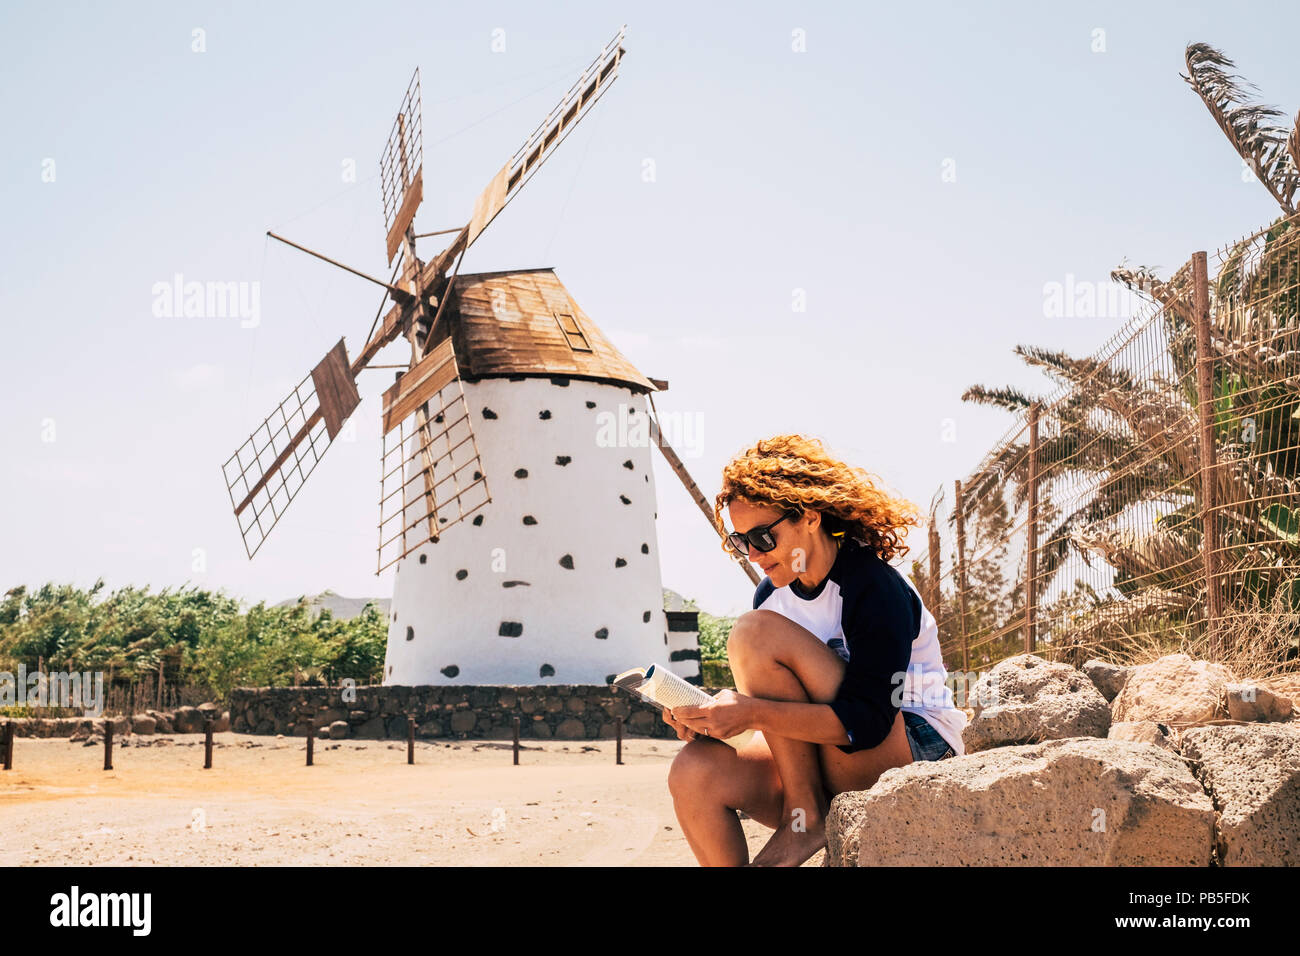 nice beautiful cheerful lady with blonde curly hair sitting under a windmill in outdoor scenic place reading a book and enjoying the leisure activity. - Stock Image